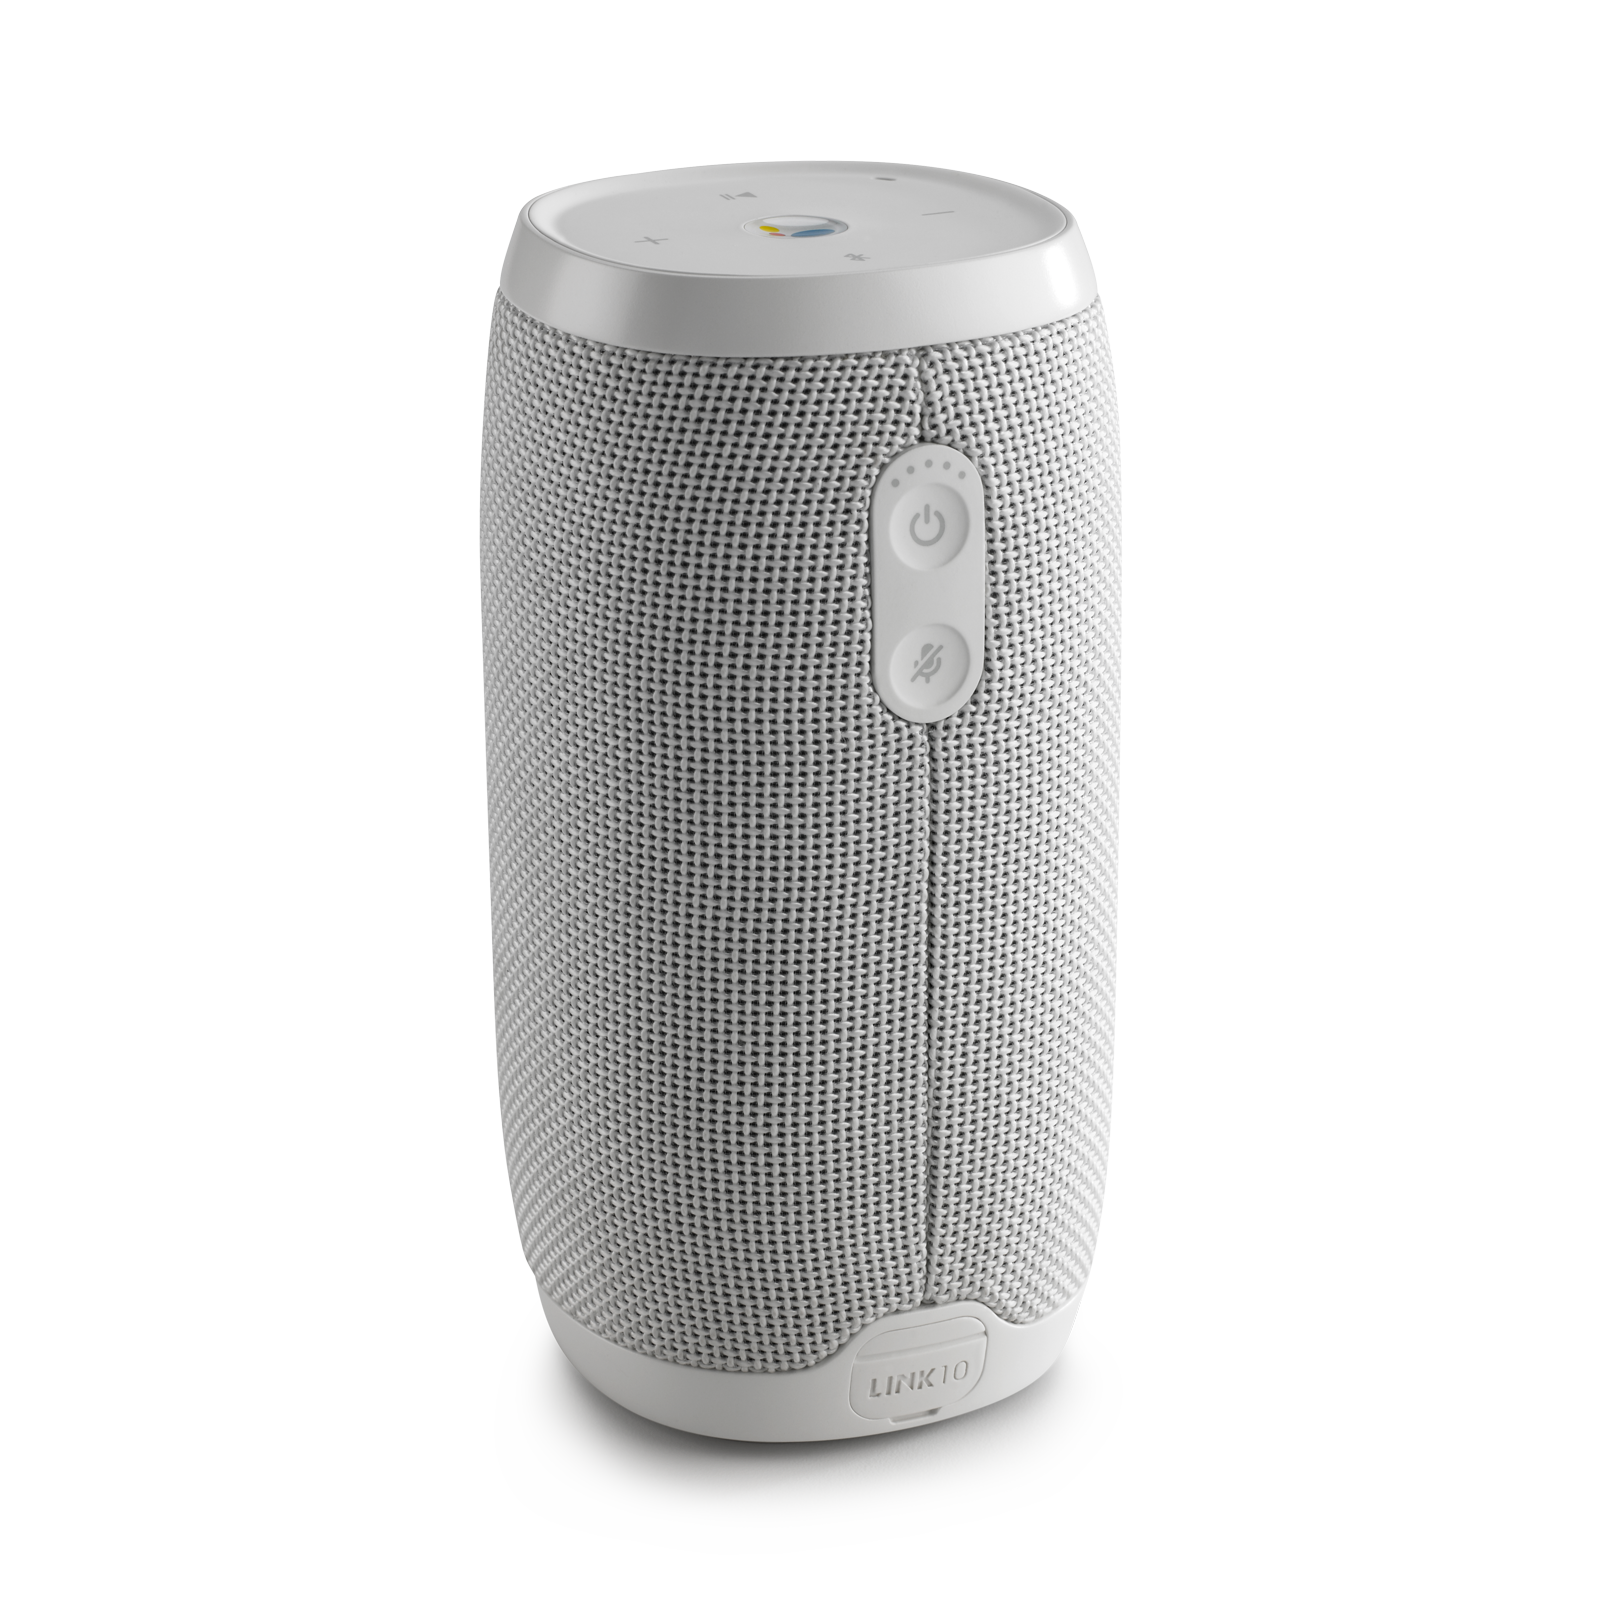 JBL Link 10 - White - Voice-activated portable speaker - Back